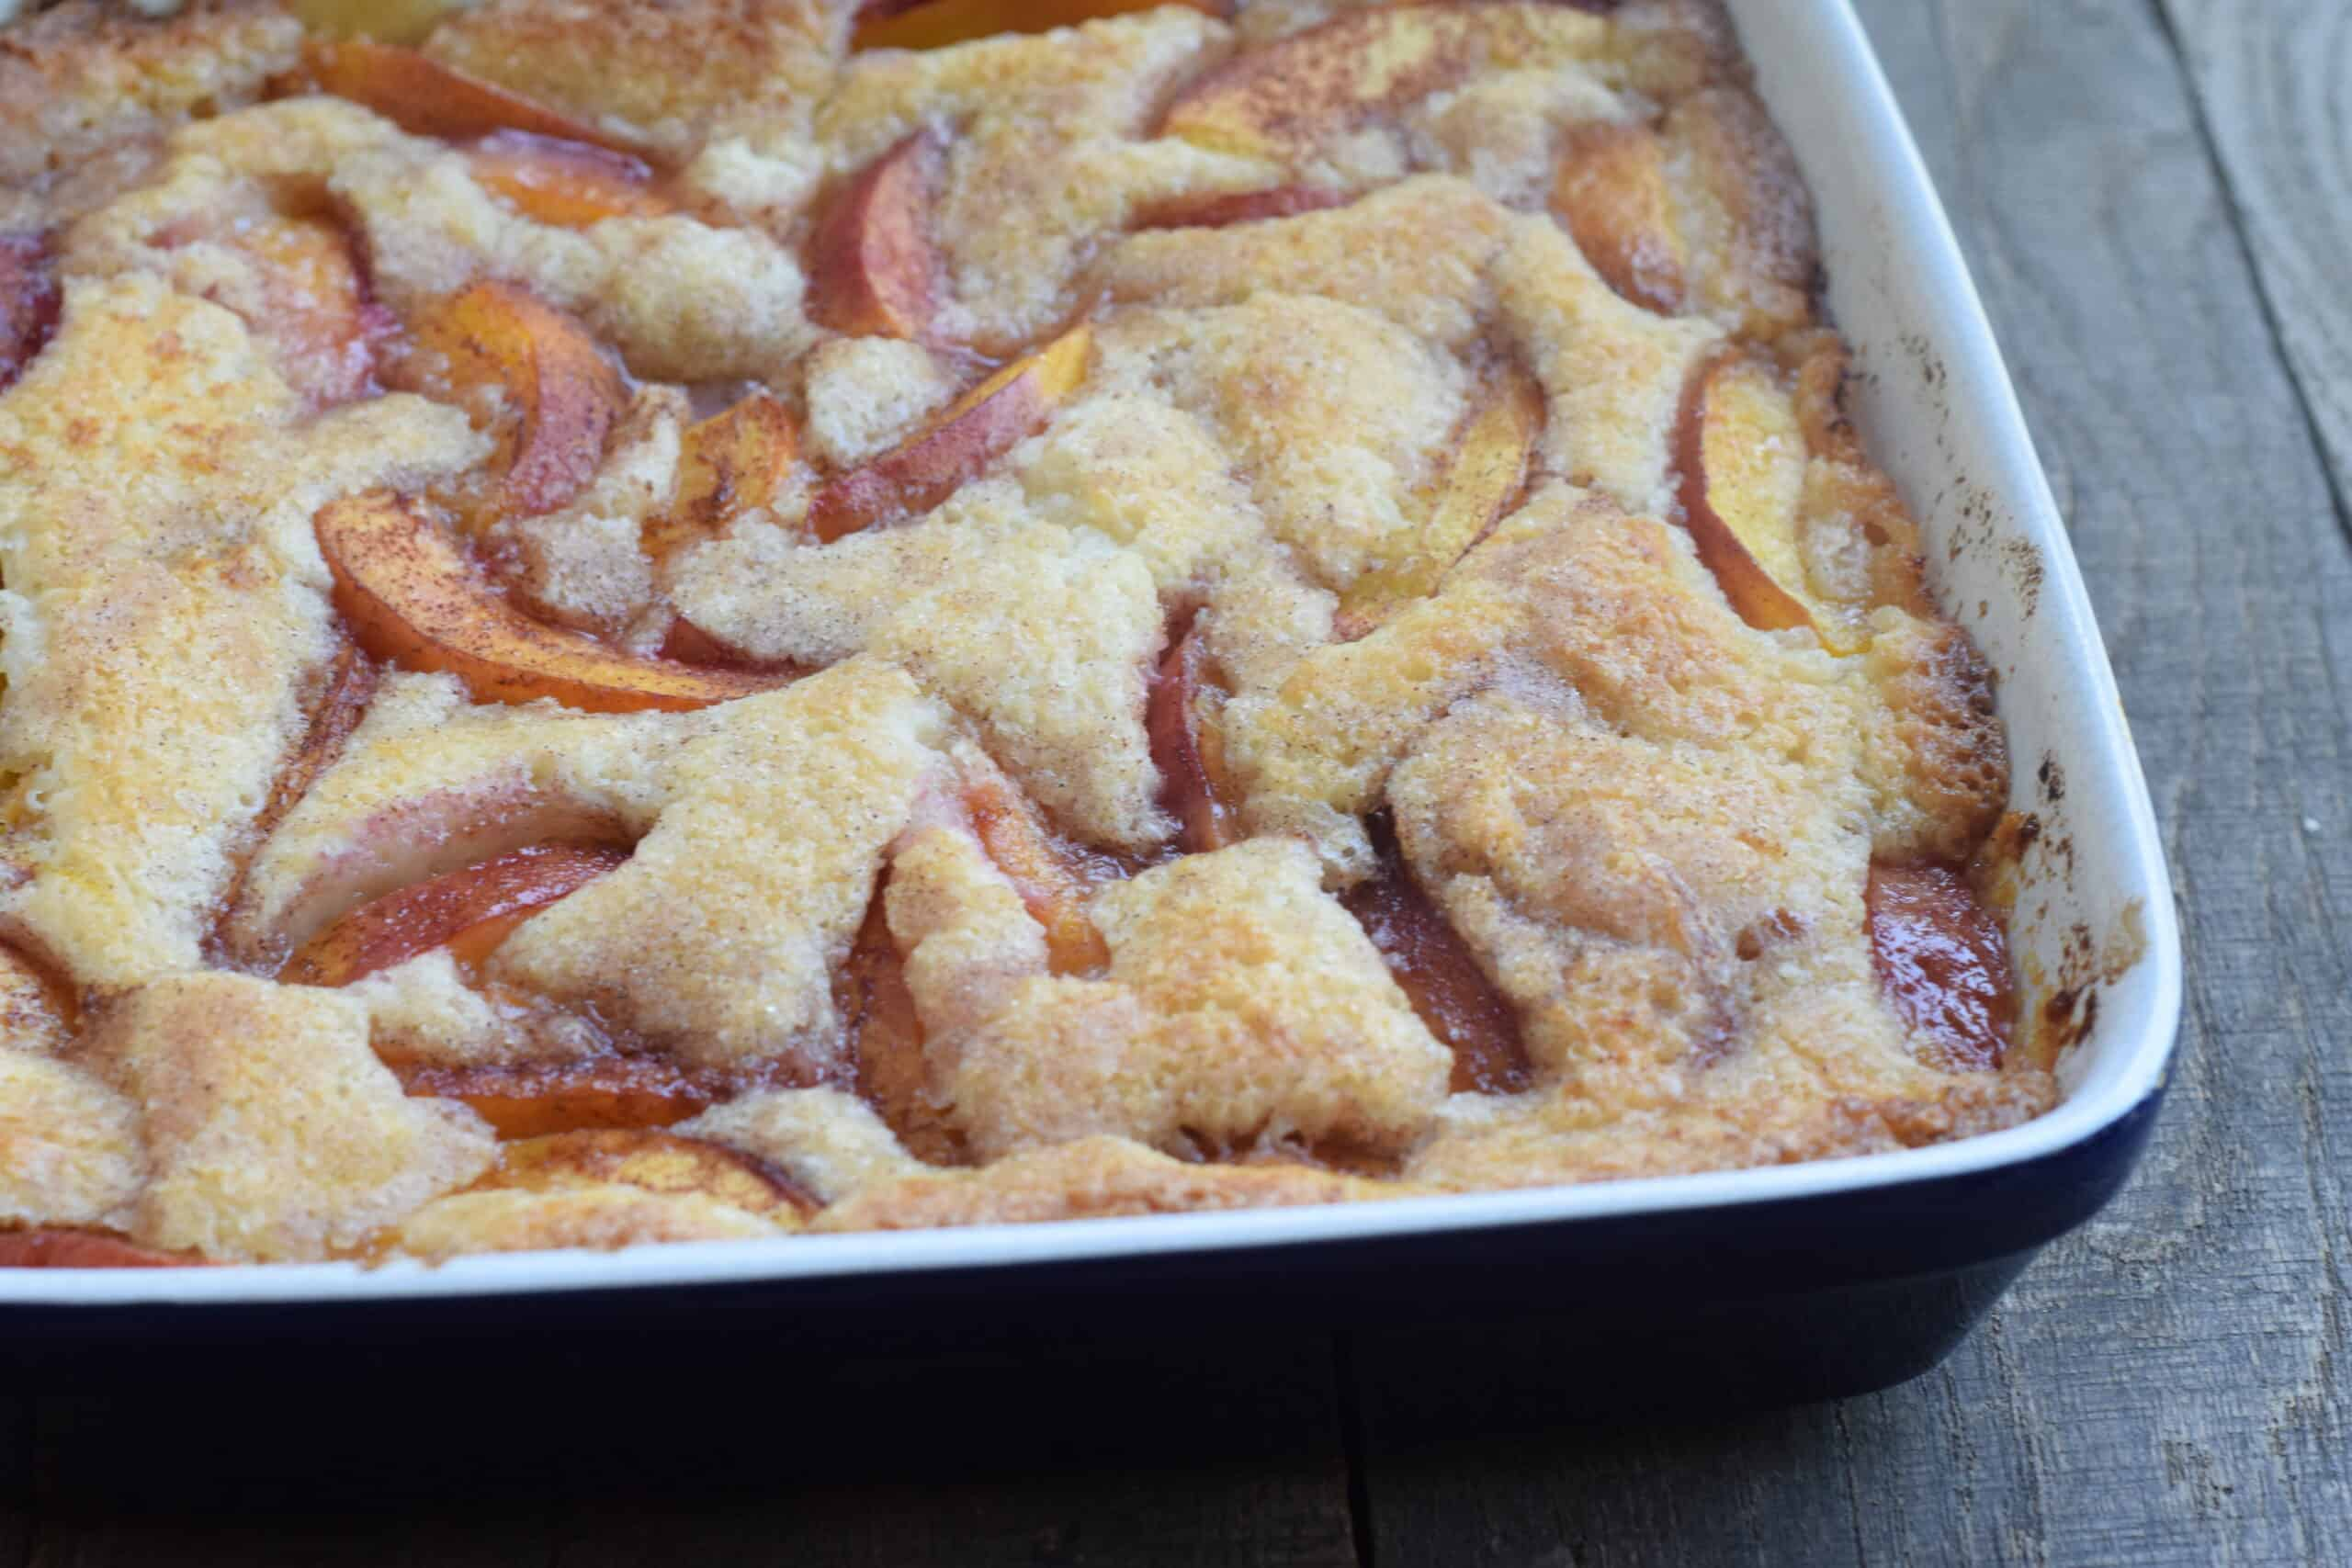 Nectarine cobbler in blue square dish on wooden surface